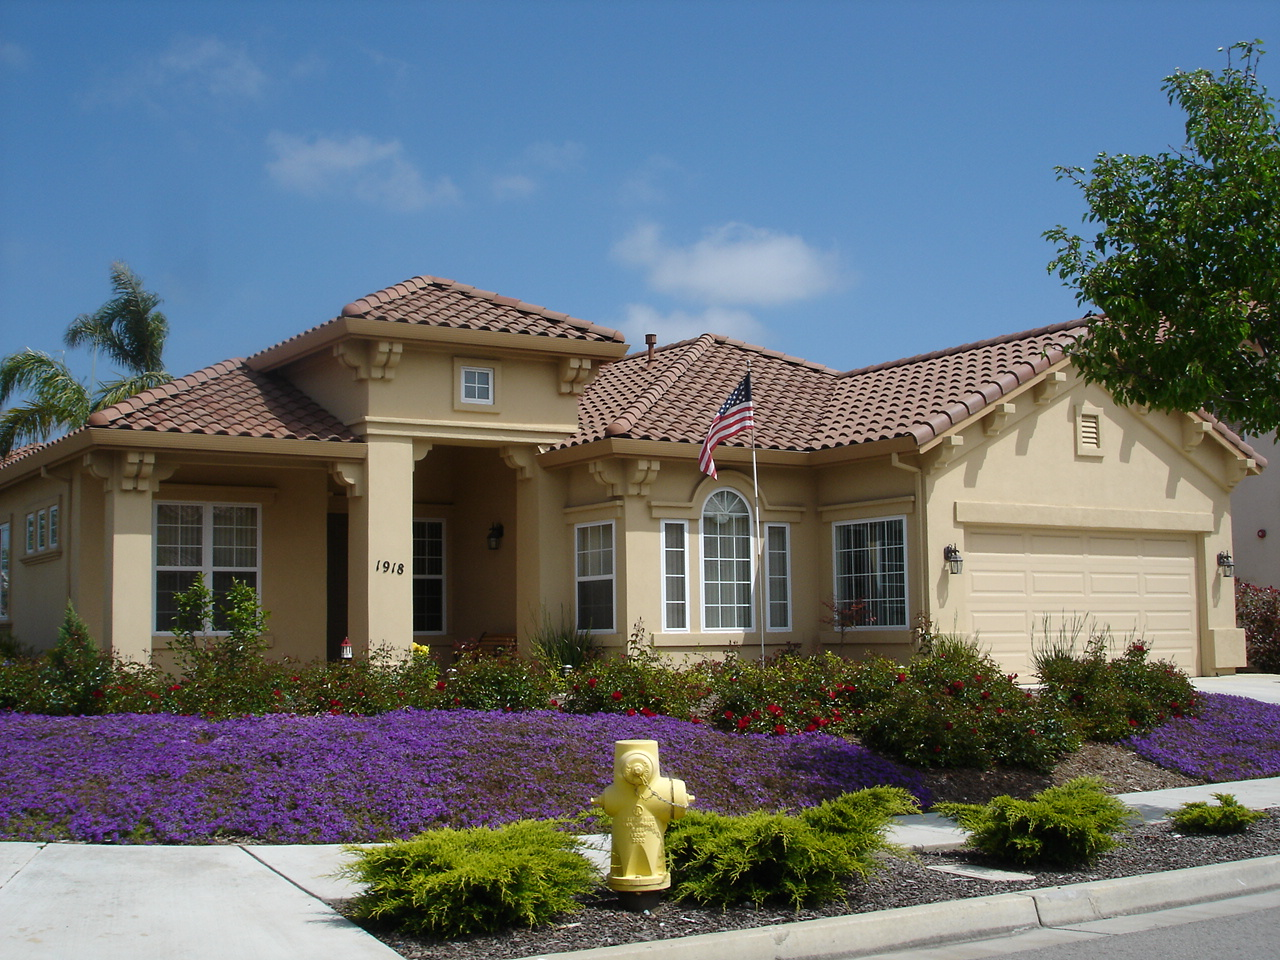 File ranch style home in salinas california jpg wikipedia Rancher homes